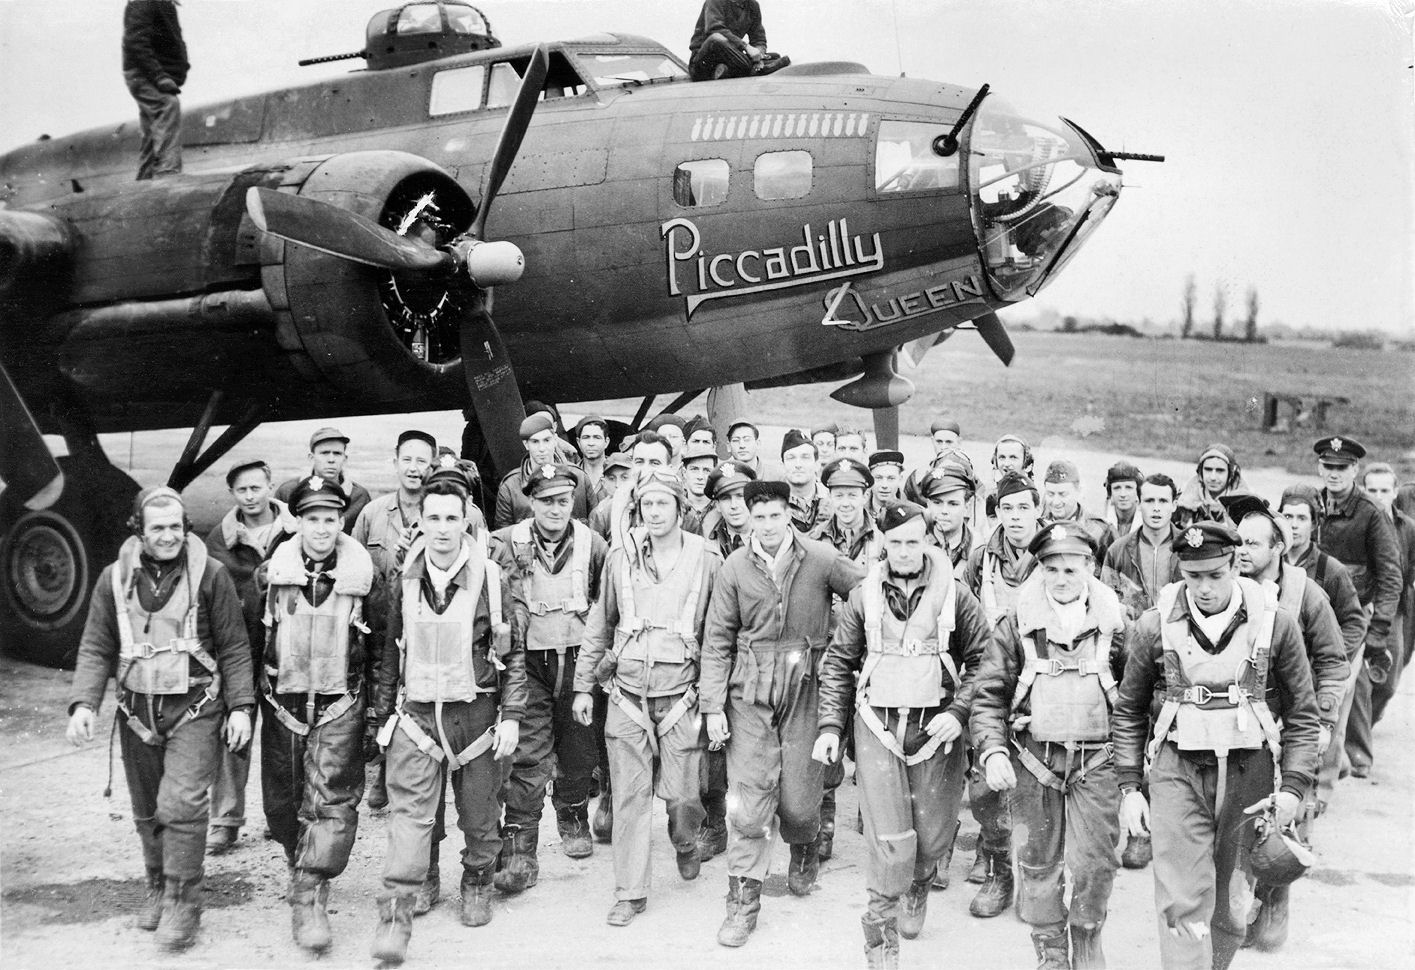 B-17 #42-30251 / Piccadilly Queen